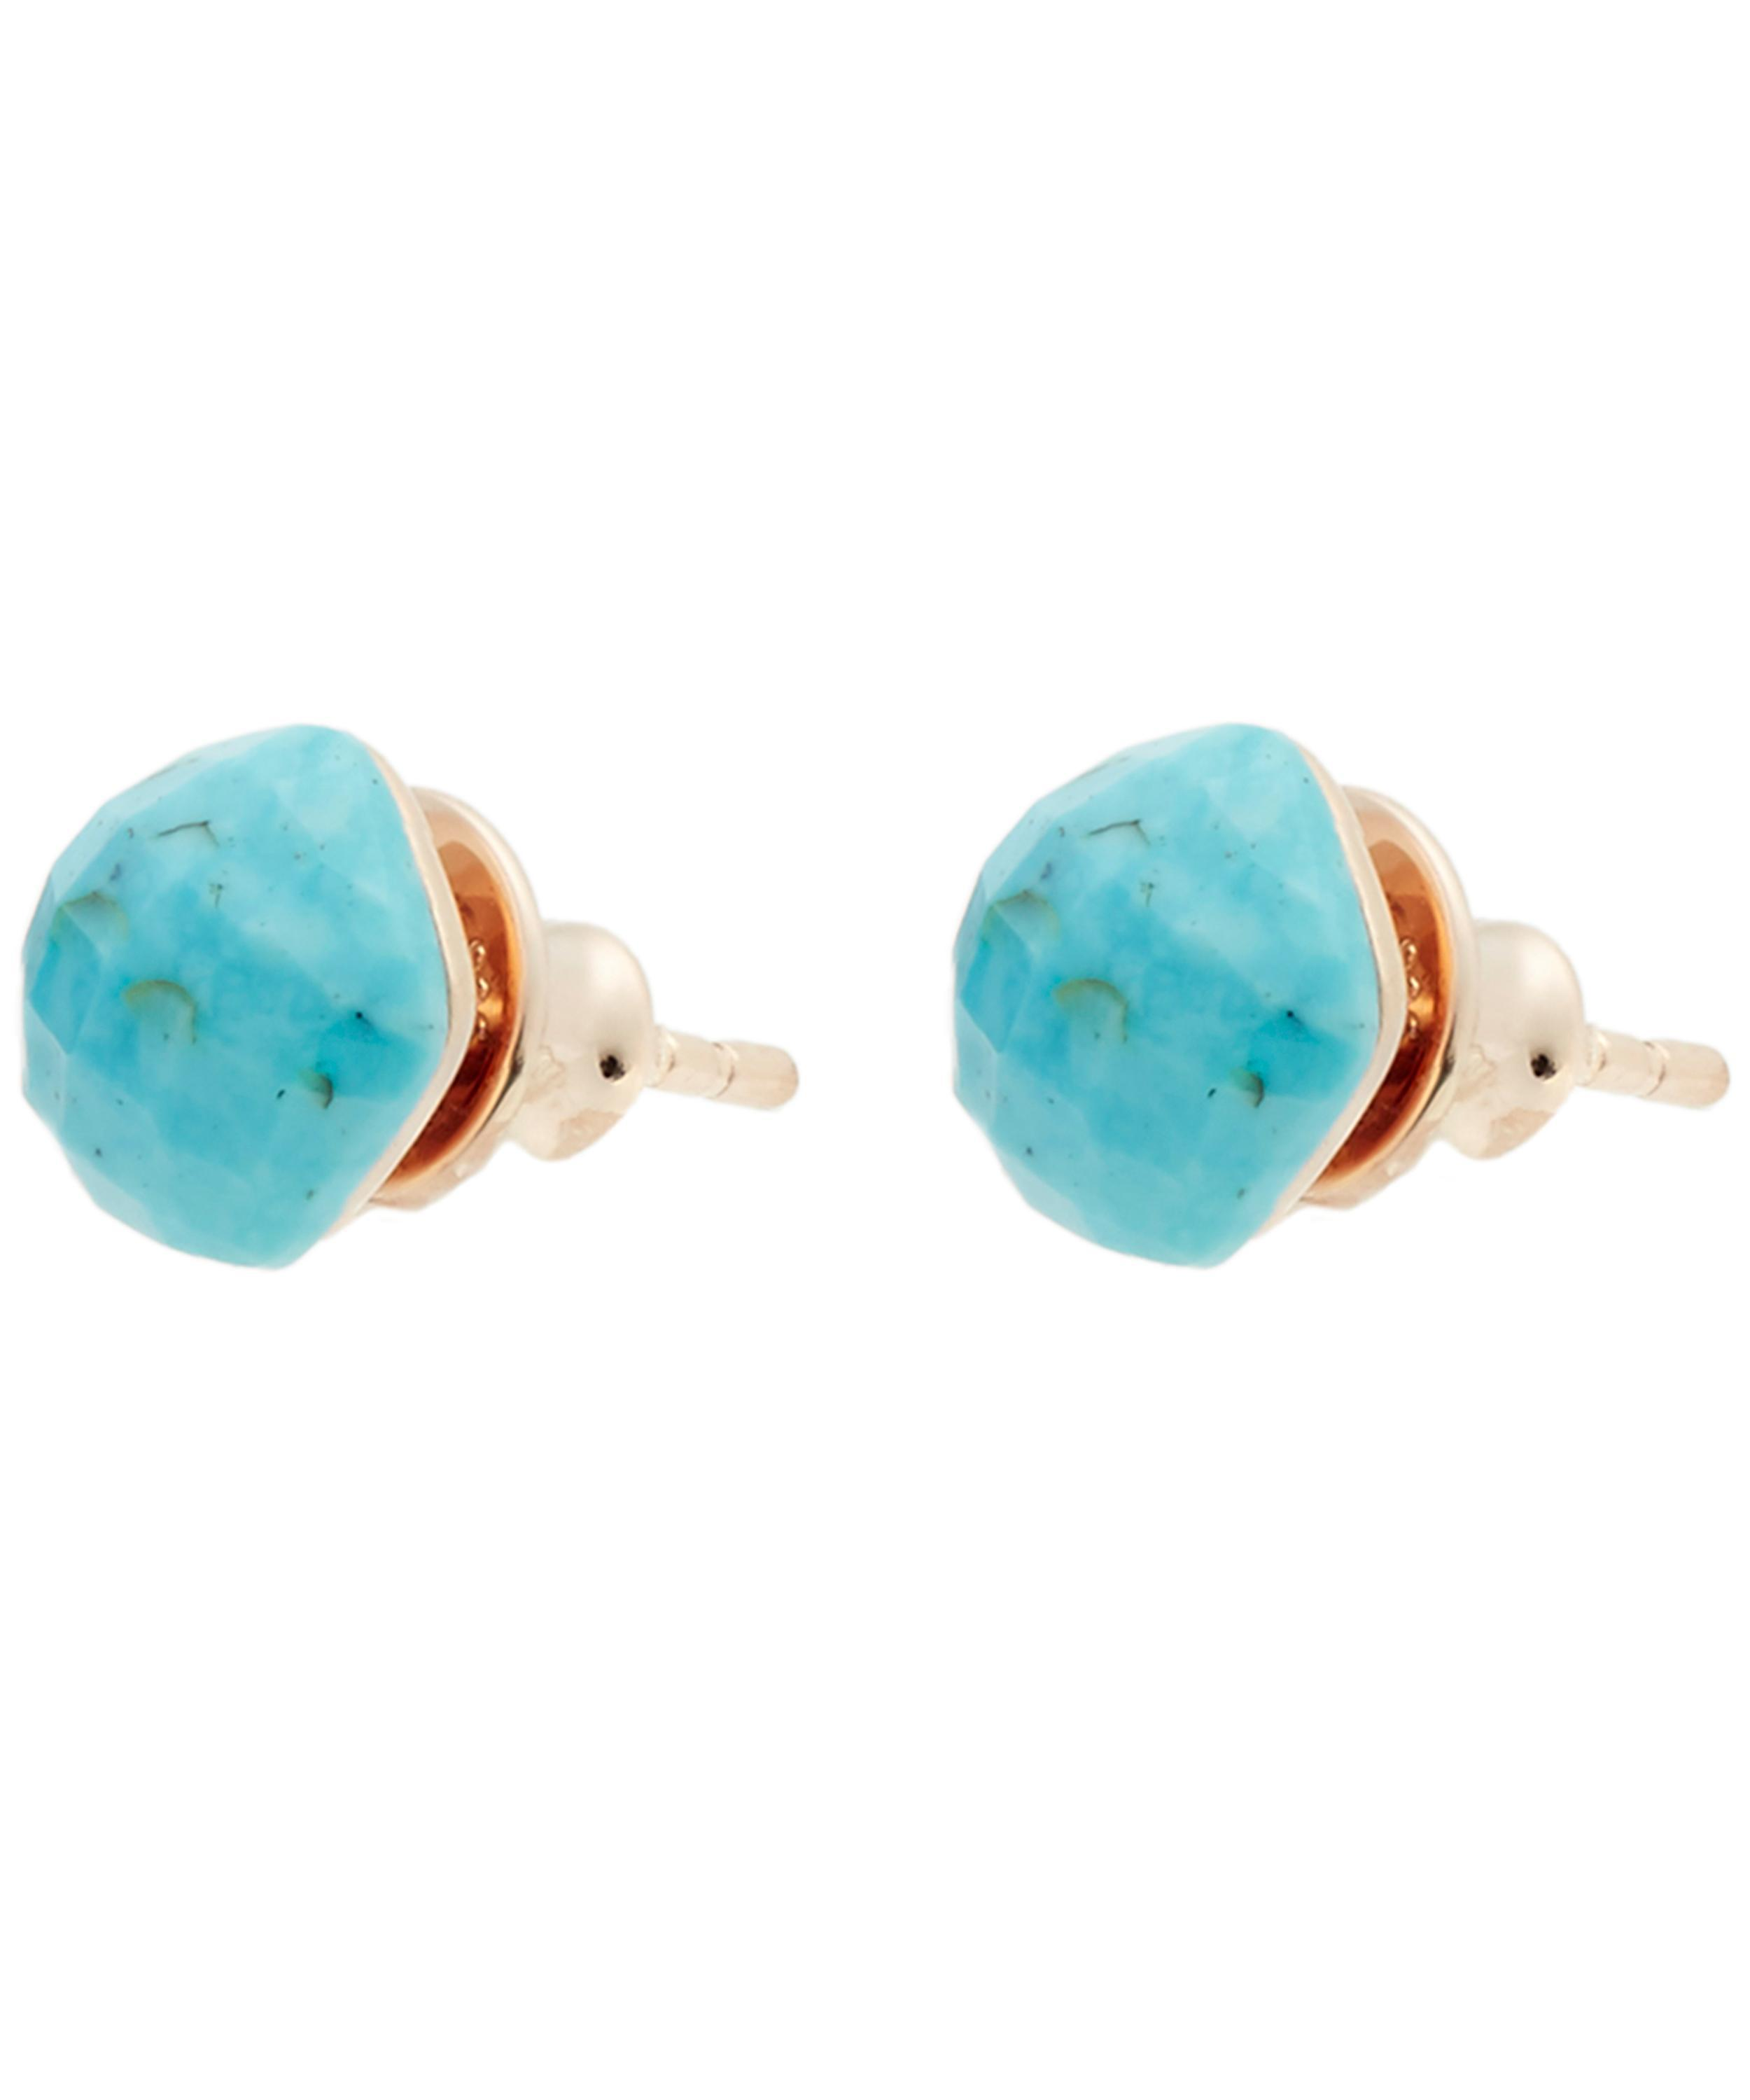 3f77133ba403f Monica Vinader Multicolor Rose Gold Vermeil Nura Turquoise Nugget Stud  Earrings